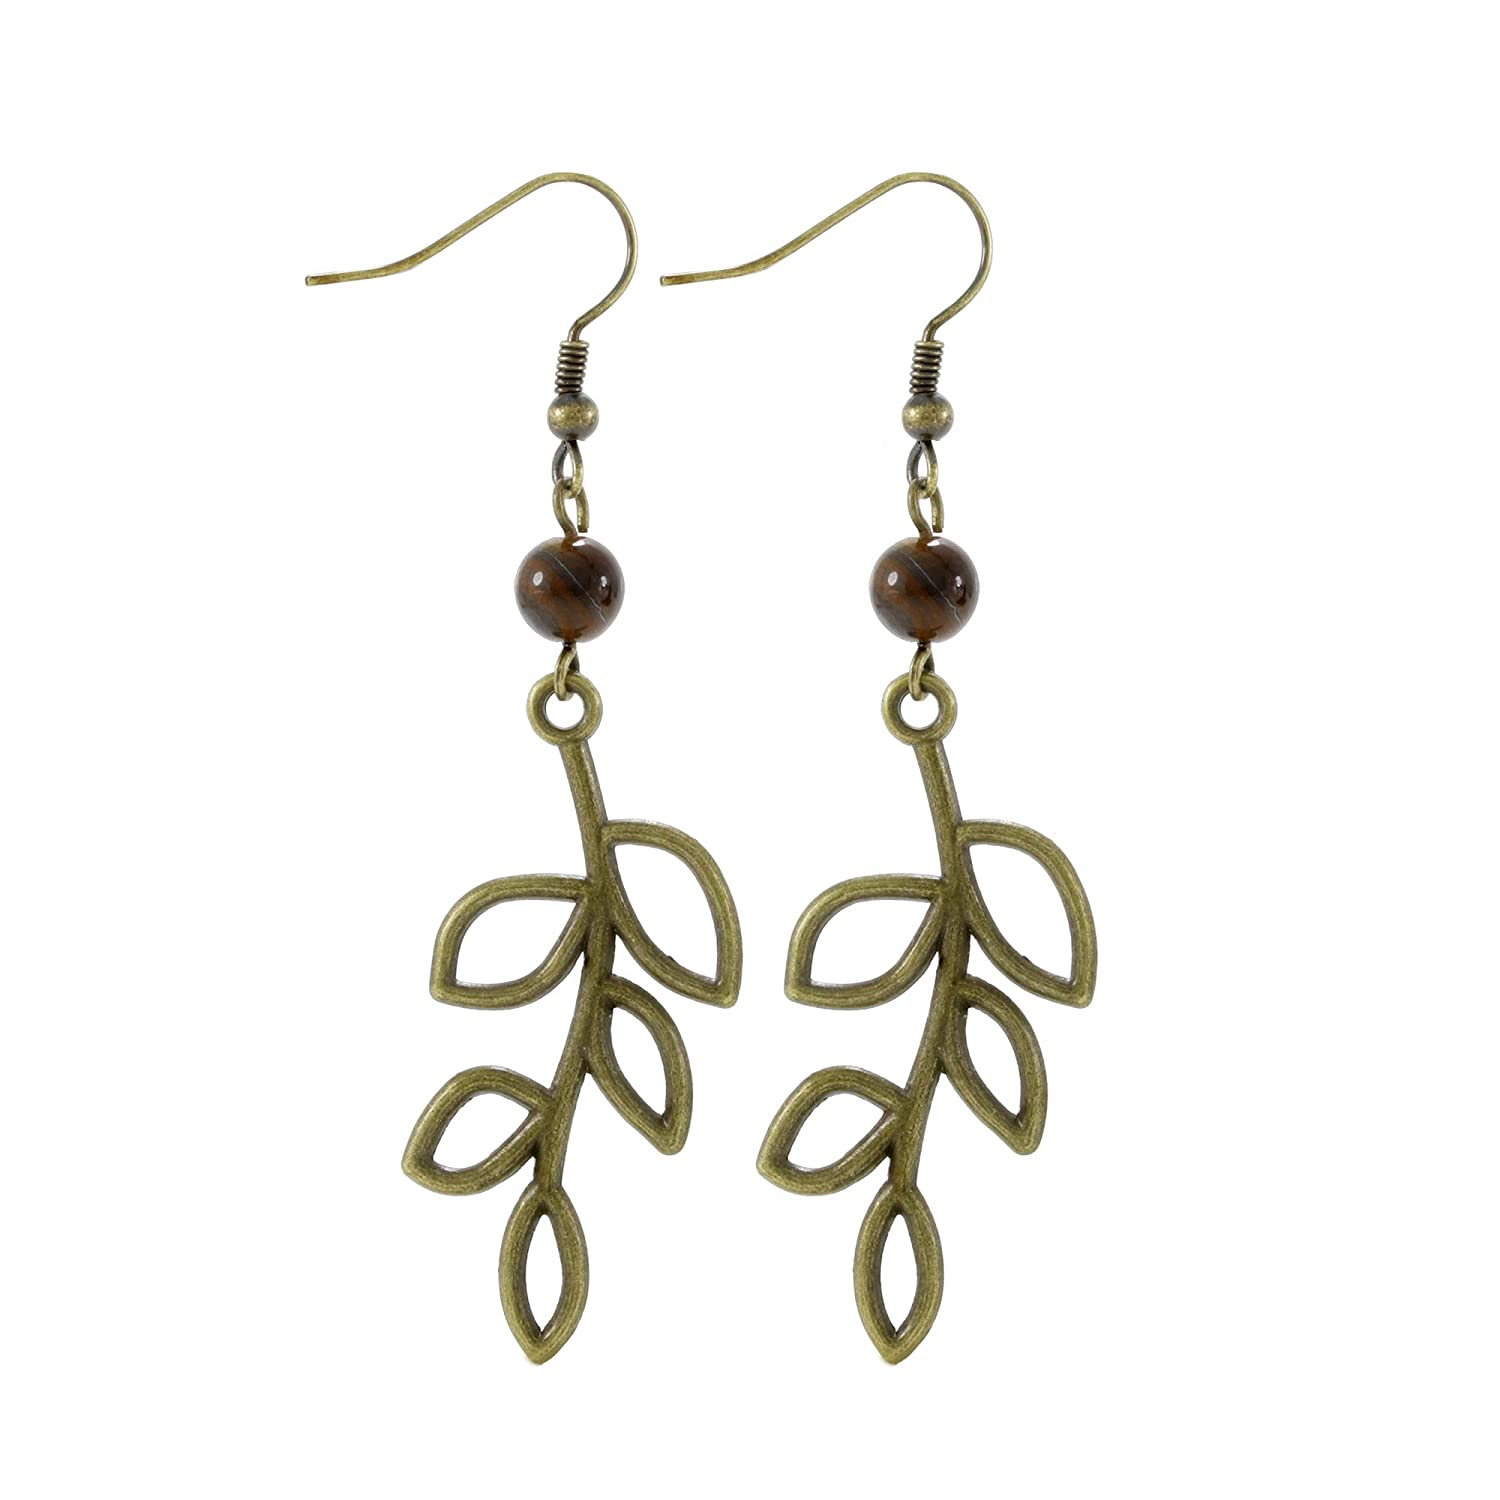 Tiger Eye Bead Bronze/Brass Tone Olive Tree Branch Leaf Earrings, Handmade Dangle Earring Set